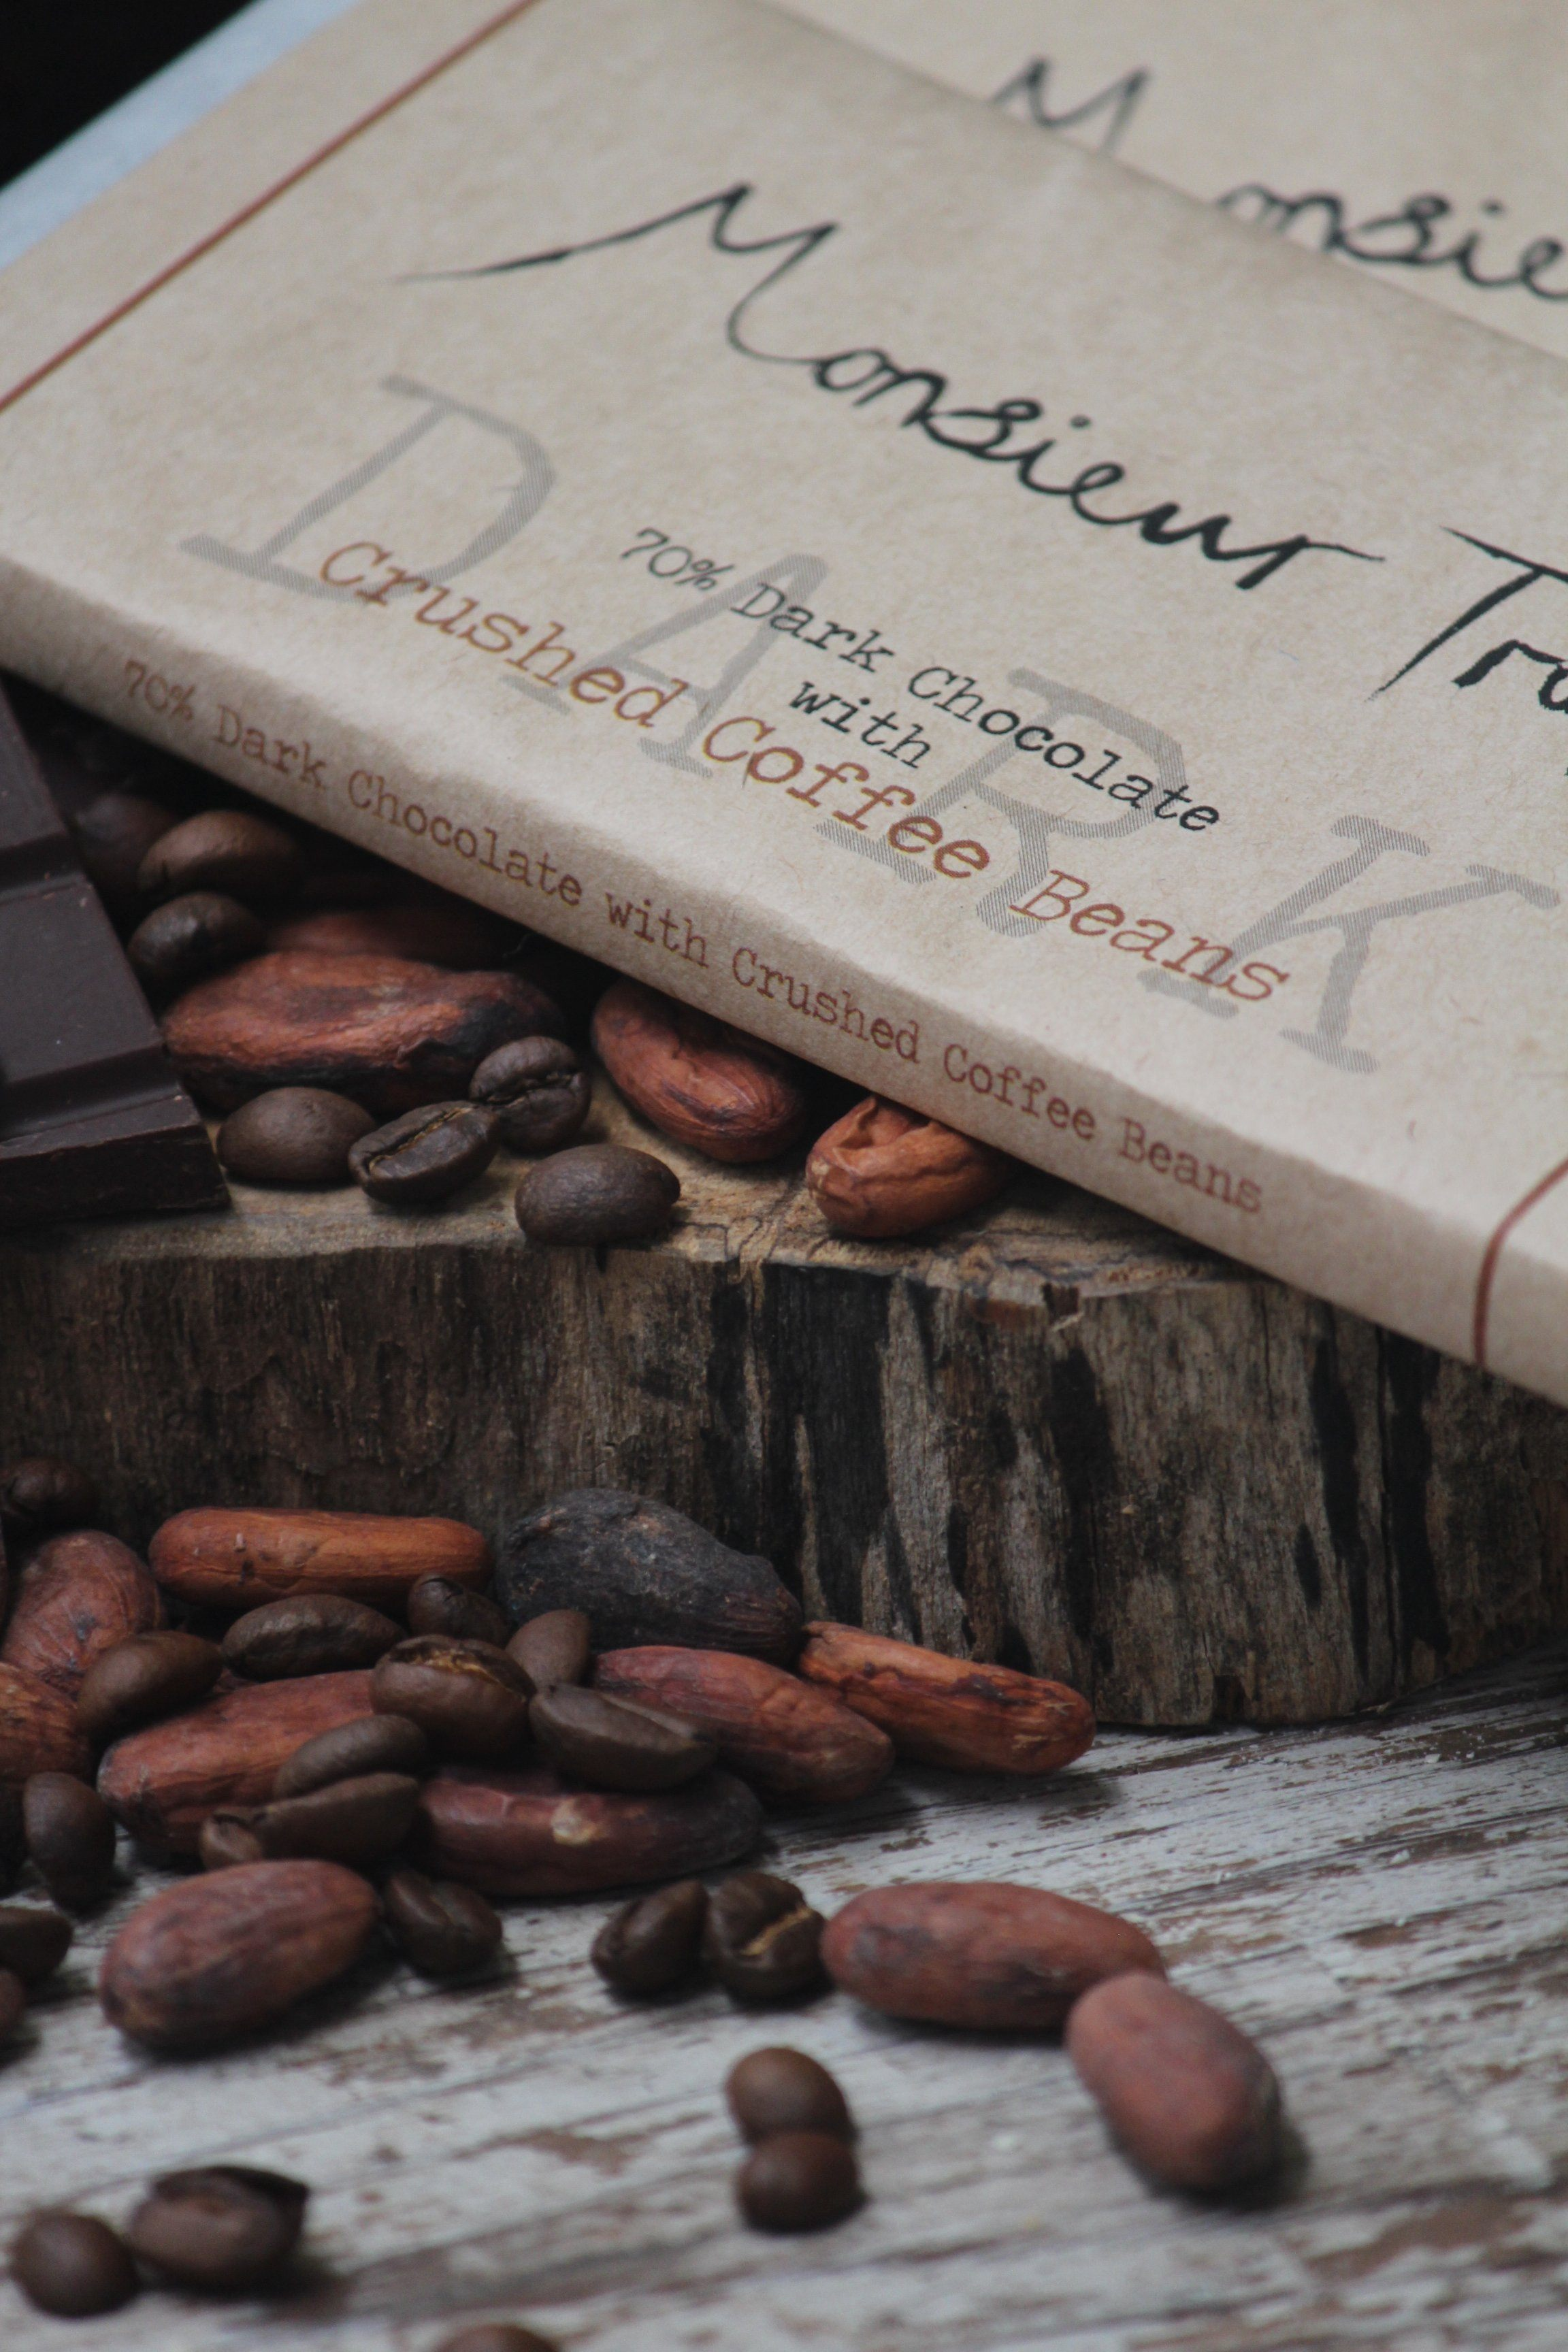 Organic 70% Dark Chocolate with Crushed Coffee Beans (MONSIEUR TRUFFE) Chocolates Beans to Bars